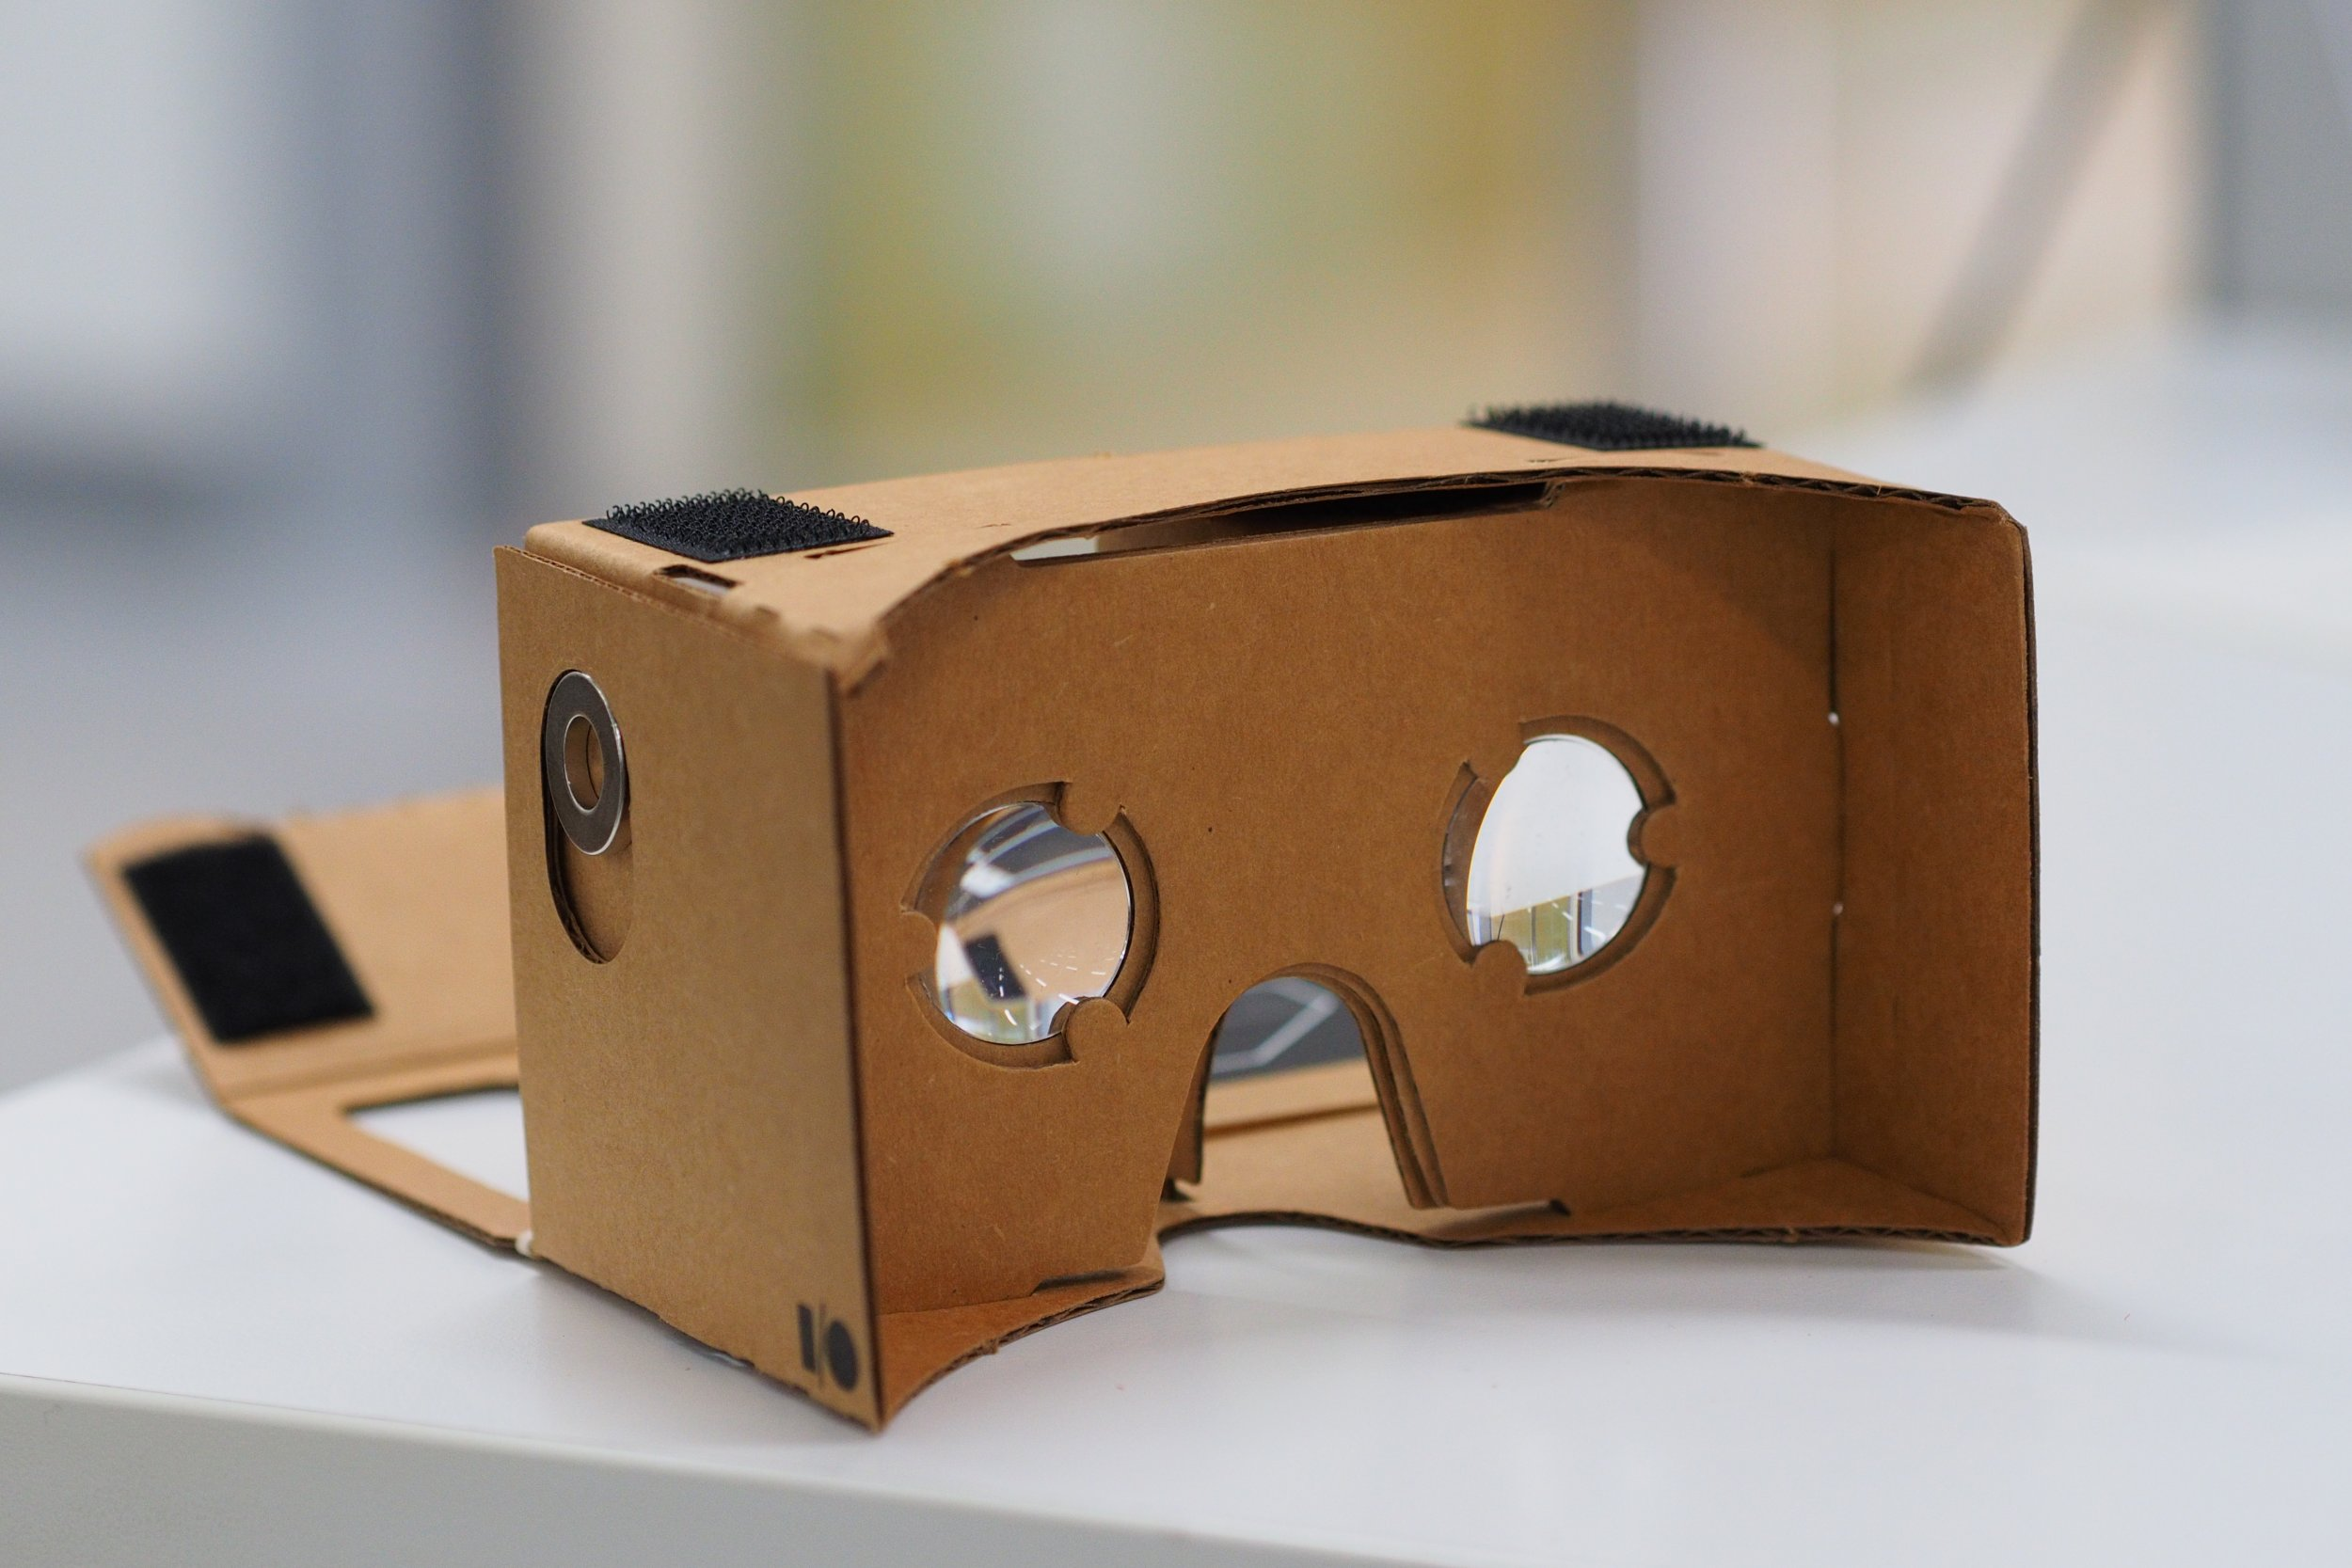 Google virtual reality headset VR cardboard